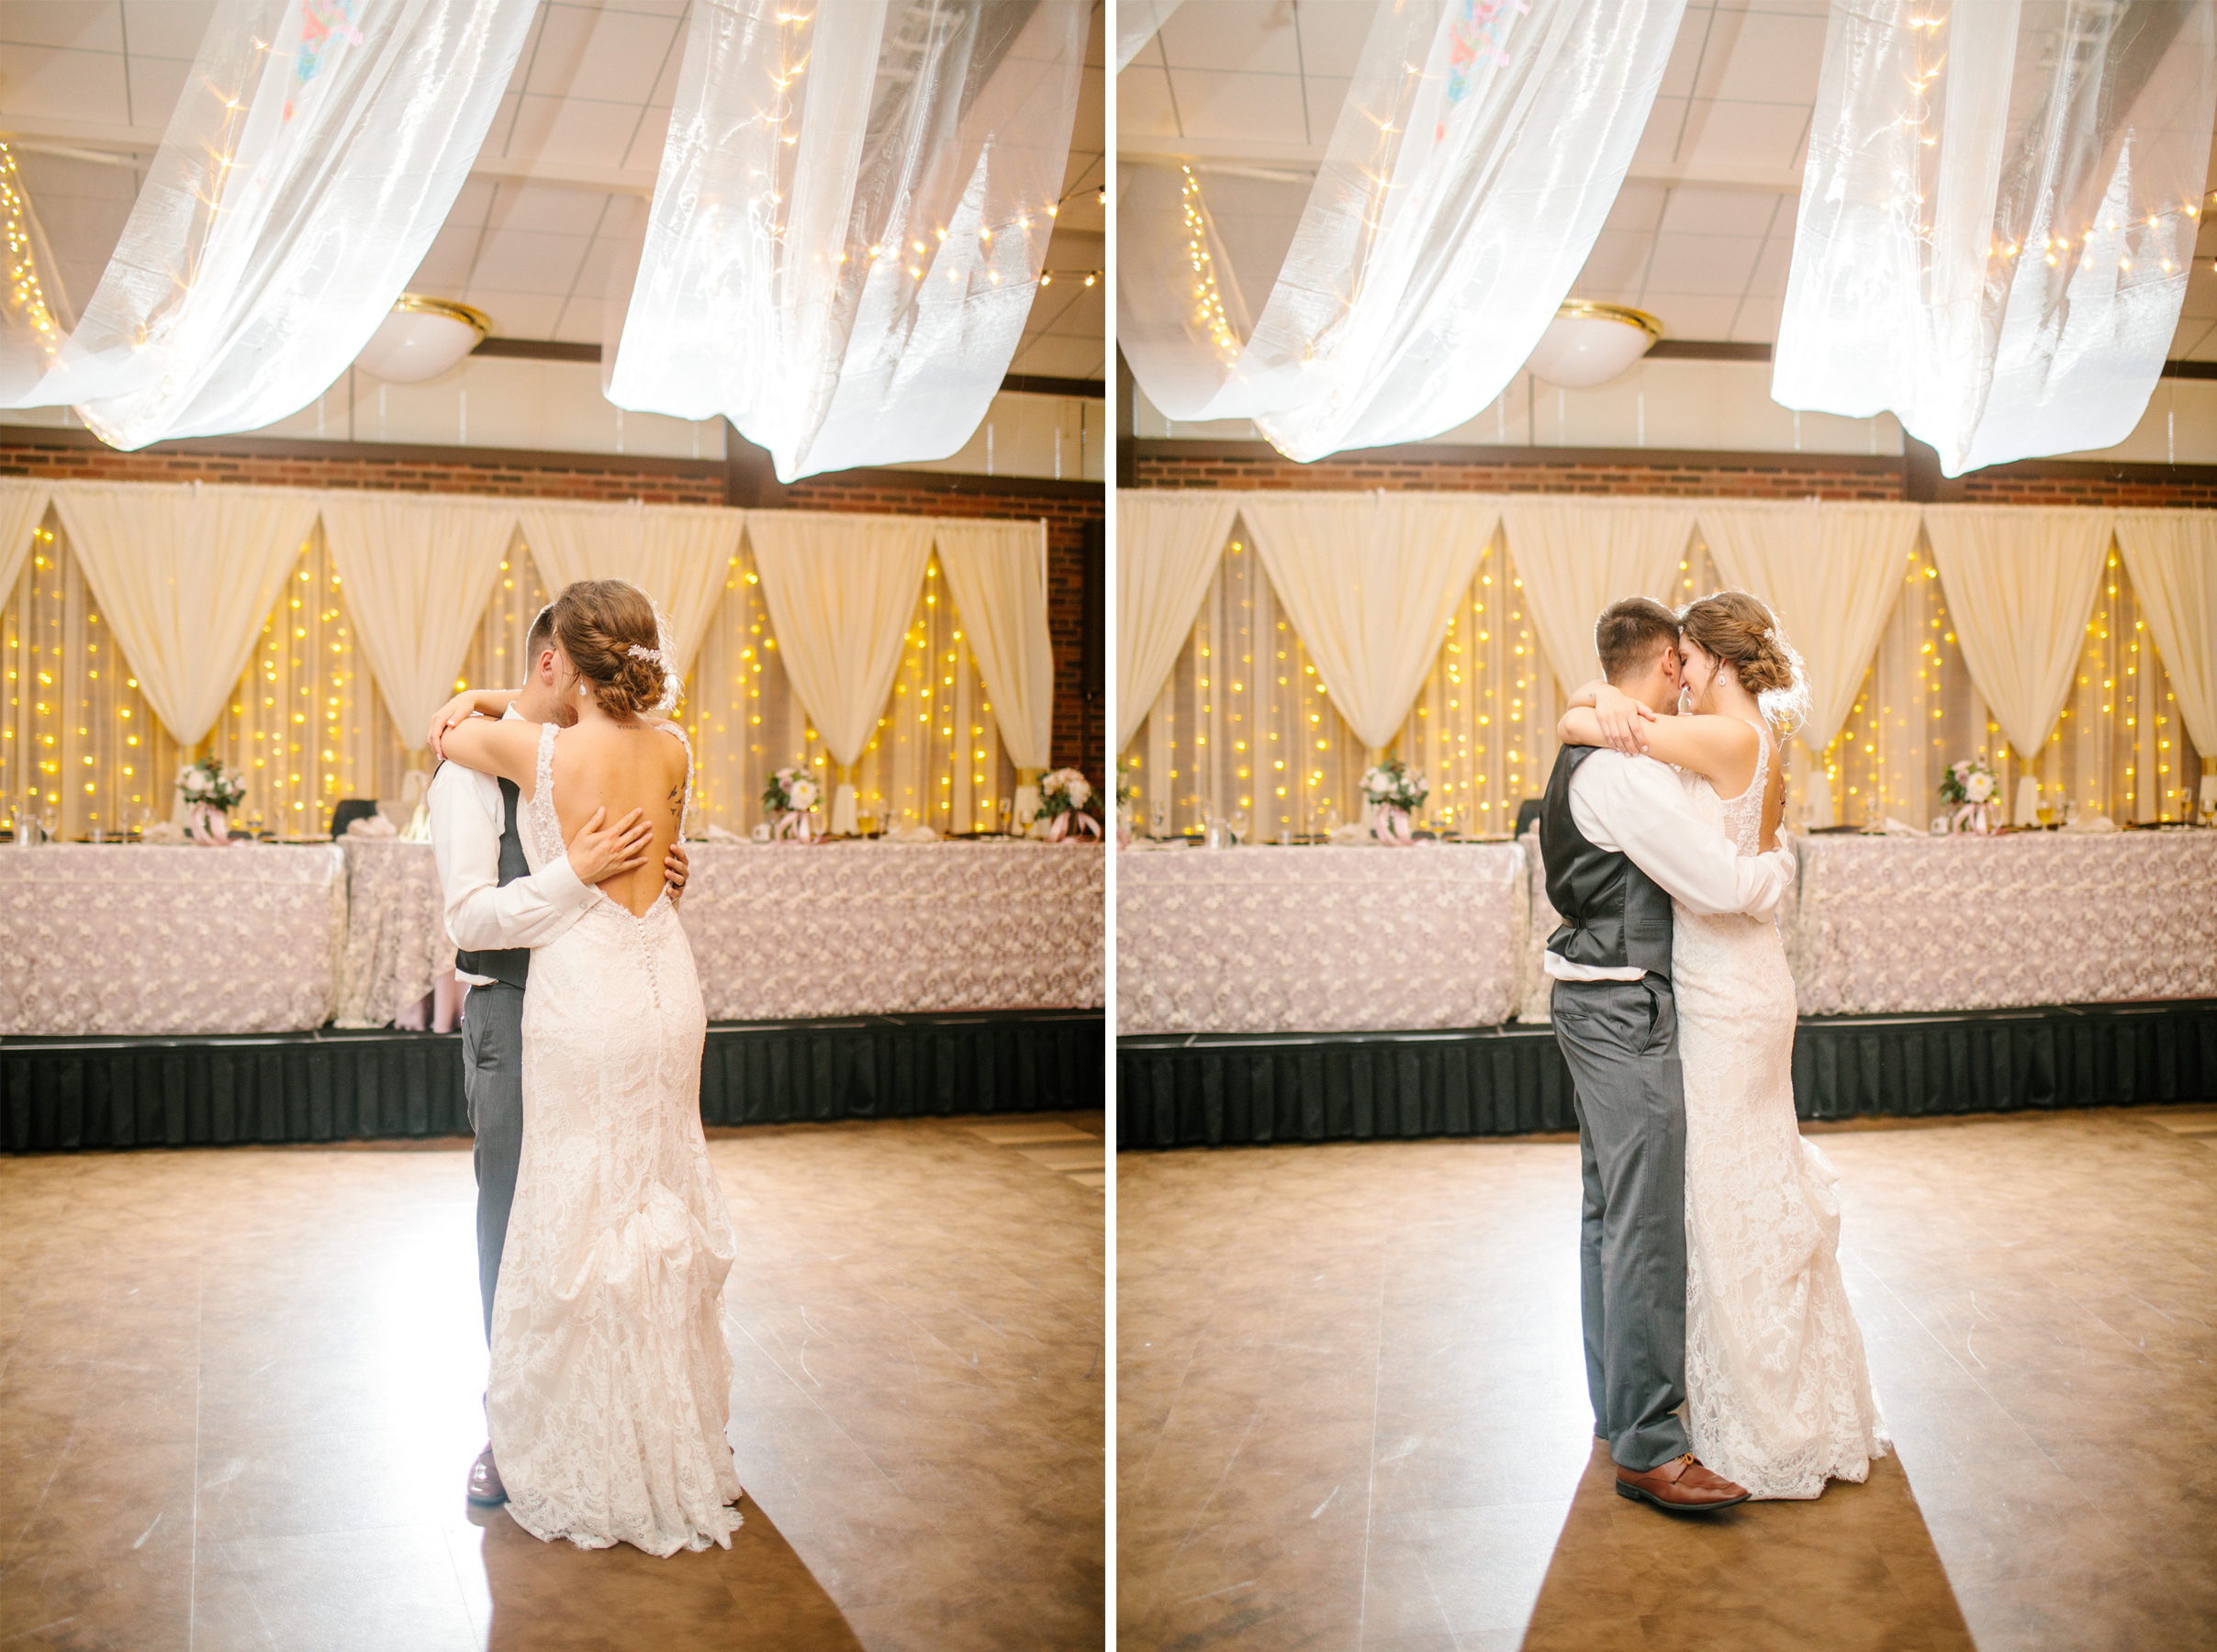 first dance photos des moines wedding photographers amelia renee